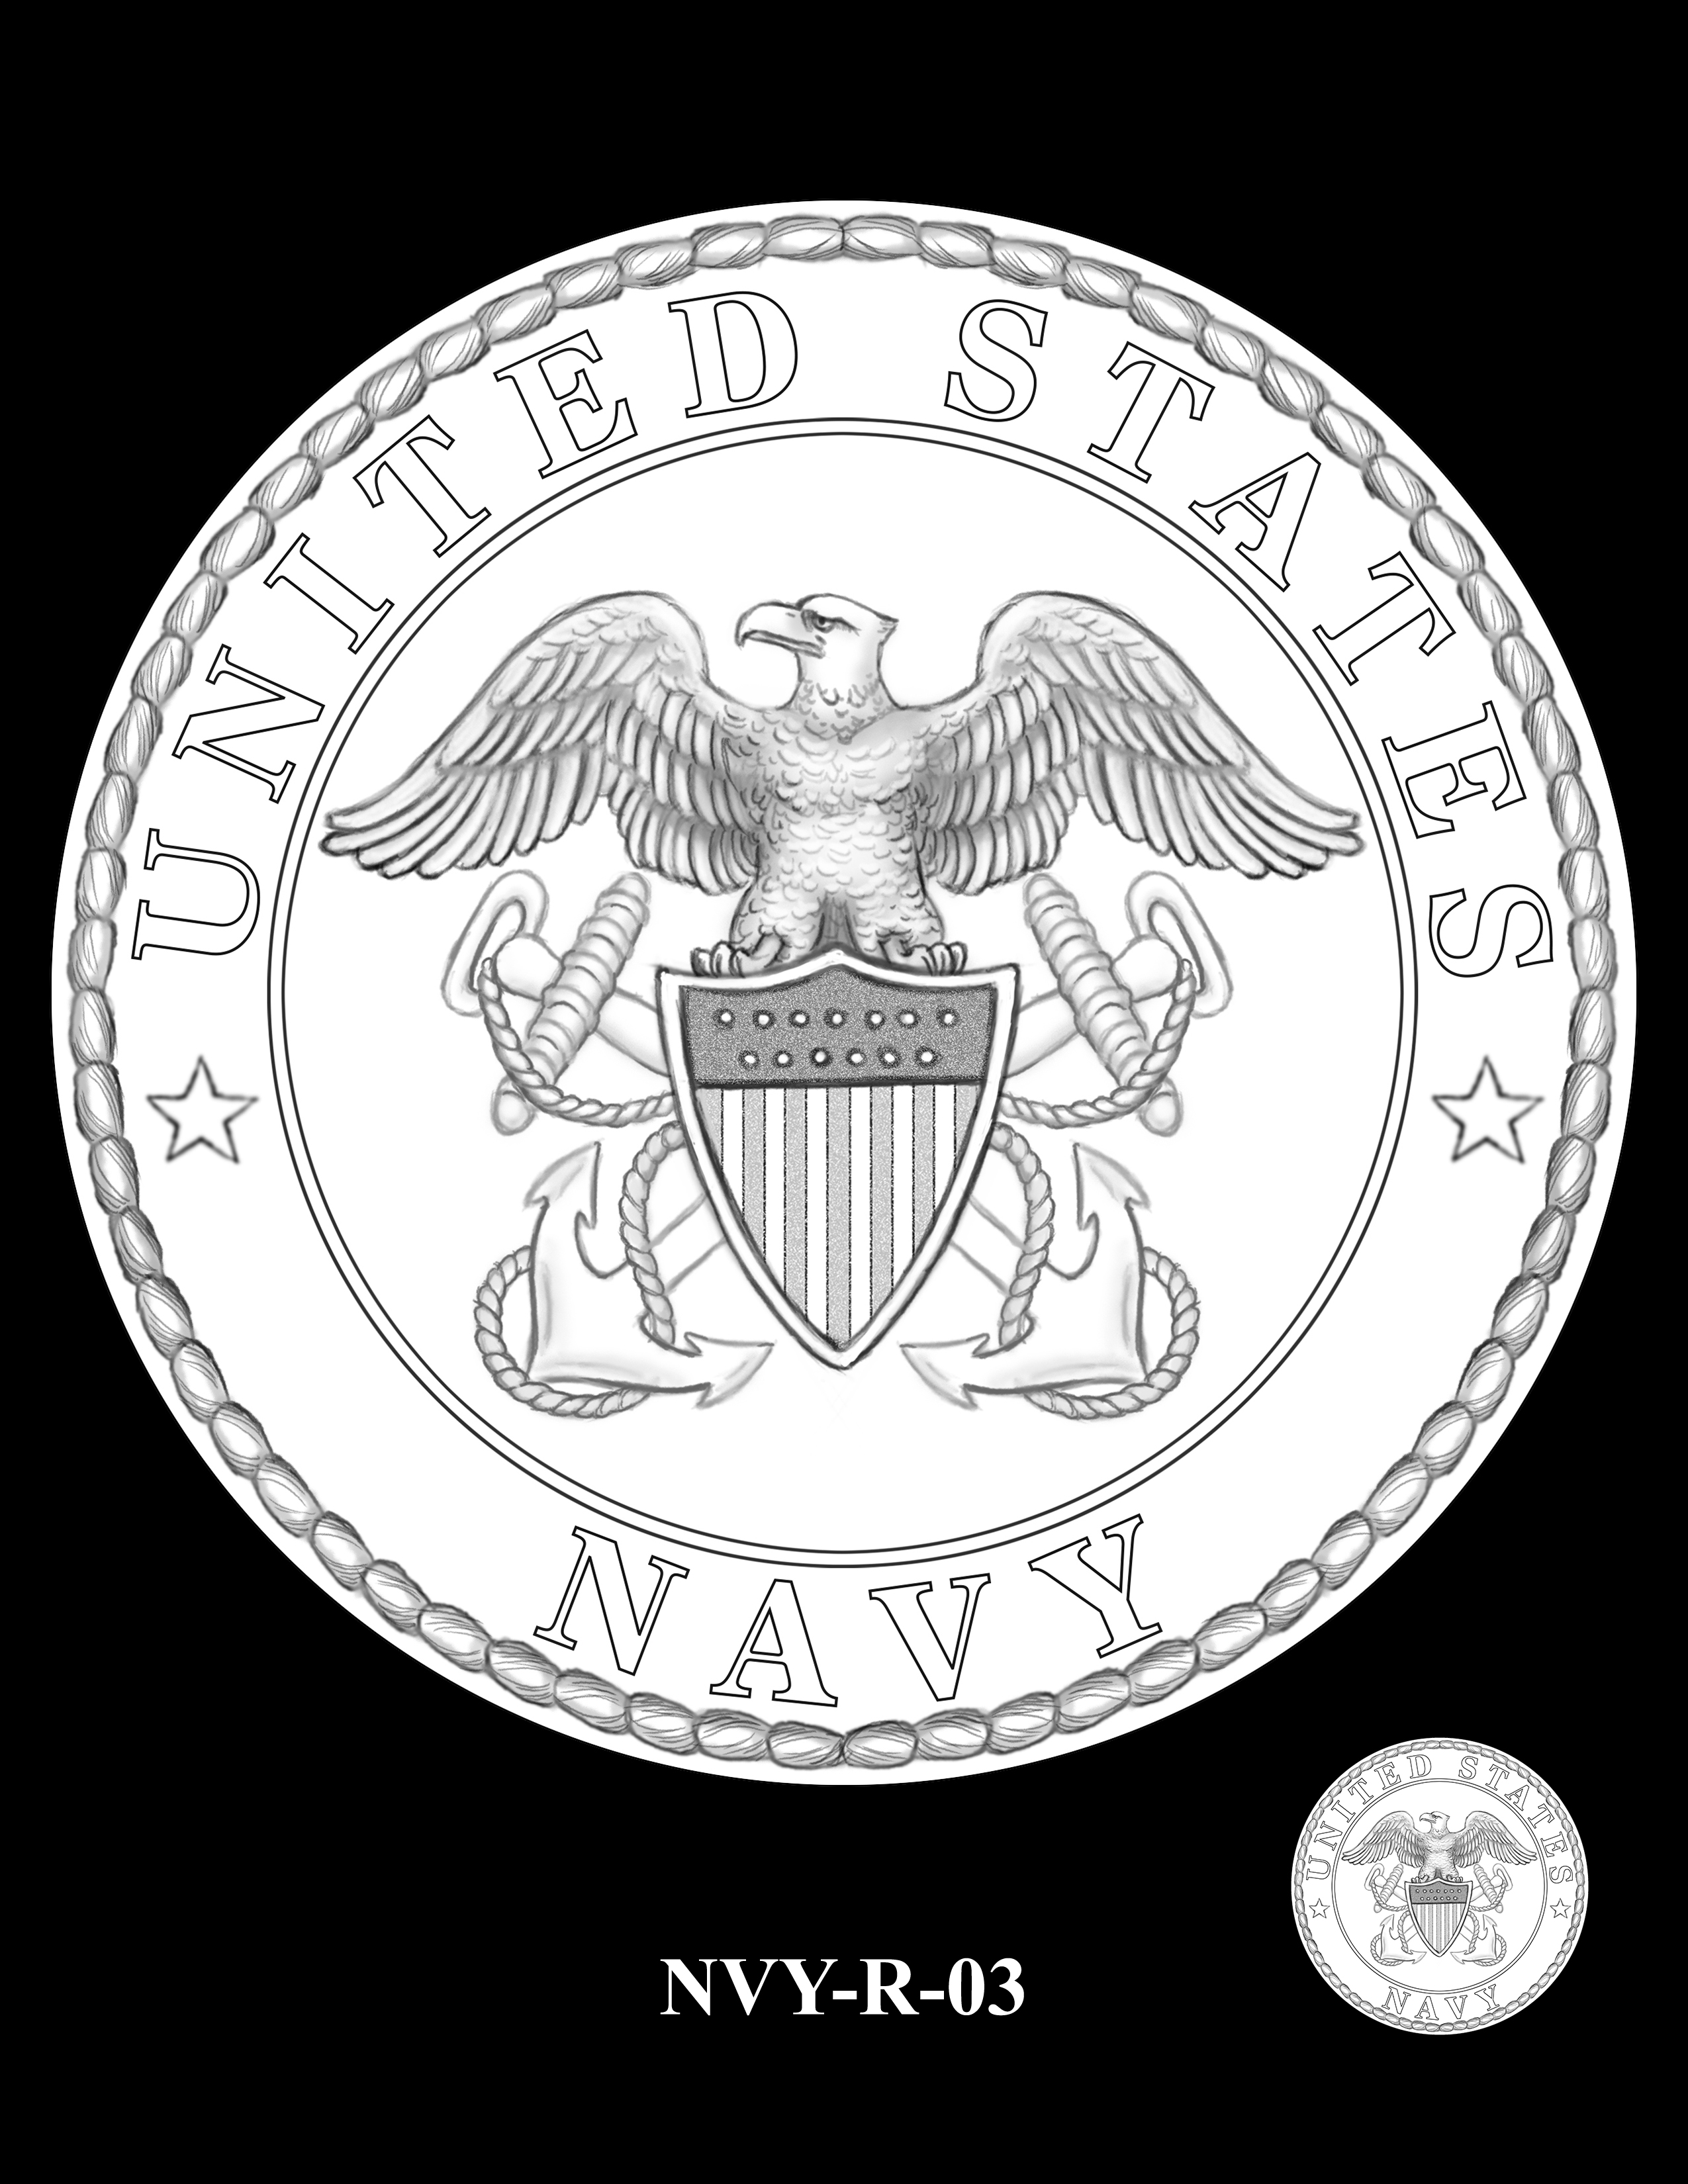 P1-NVY-R-03 -- 2018-World War I Silver Medals - Navy